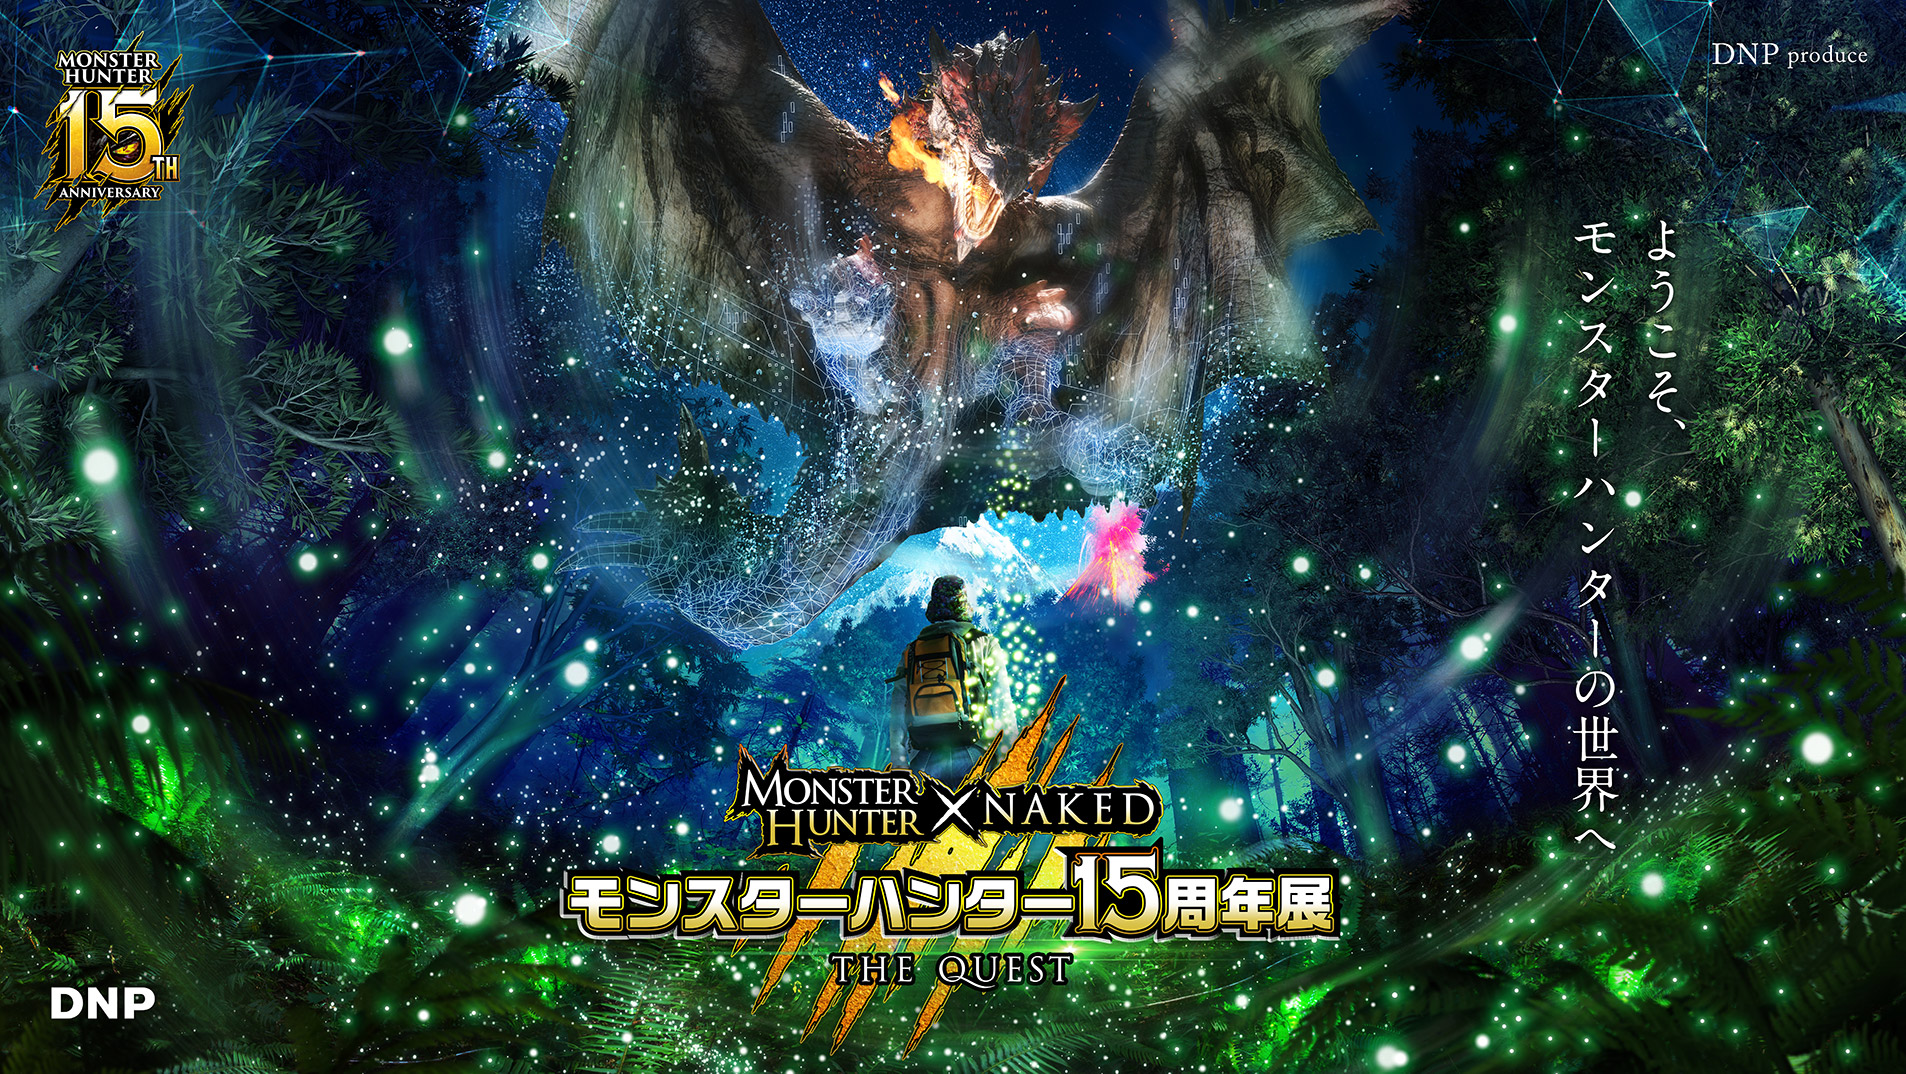 DNP Produce MONSTER HUNTER × NAKED「モンスターハンター15周年展」 – THE QUEST –